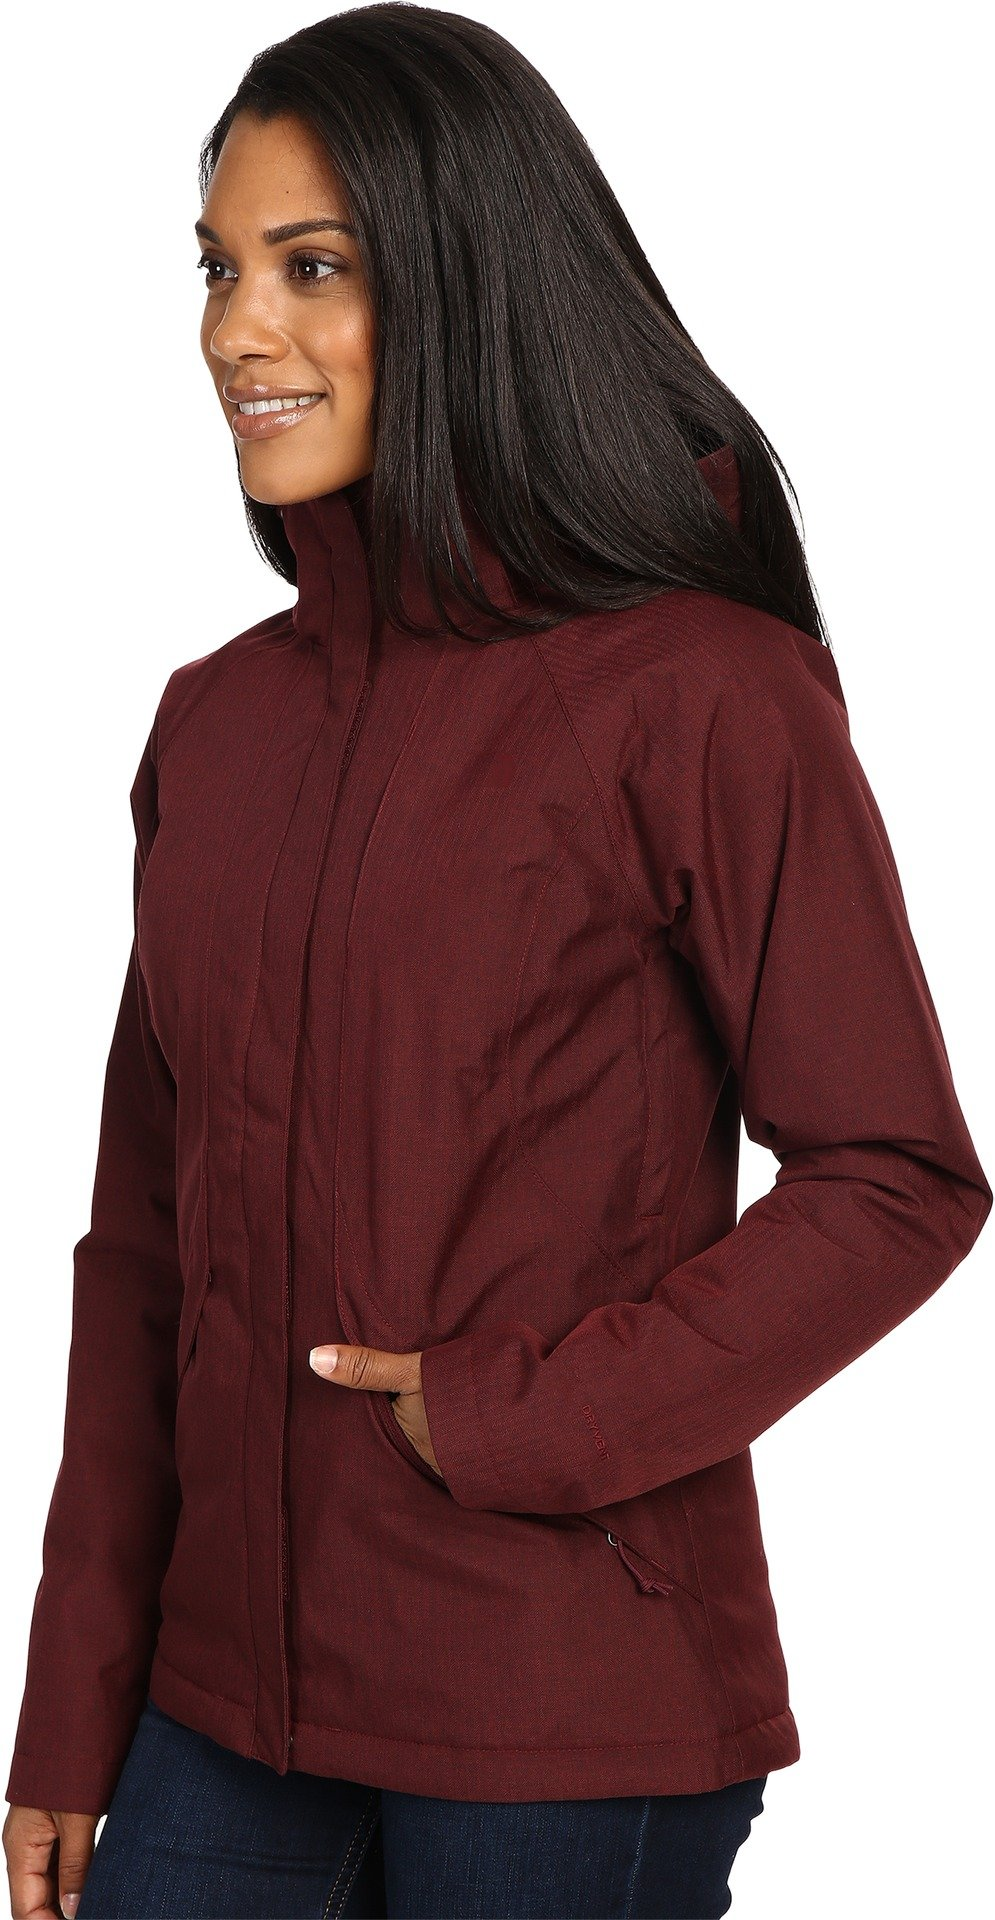 The North Face Women's Inlux Insulated Jacket Deep Garnet Red Heather (Prior Season) X-Small by The North Face (Image #2)